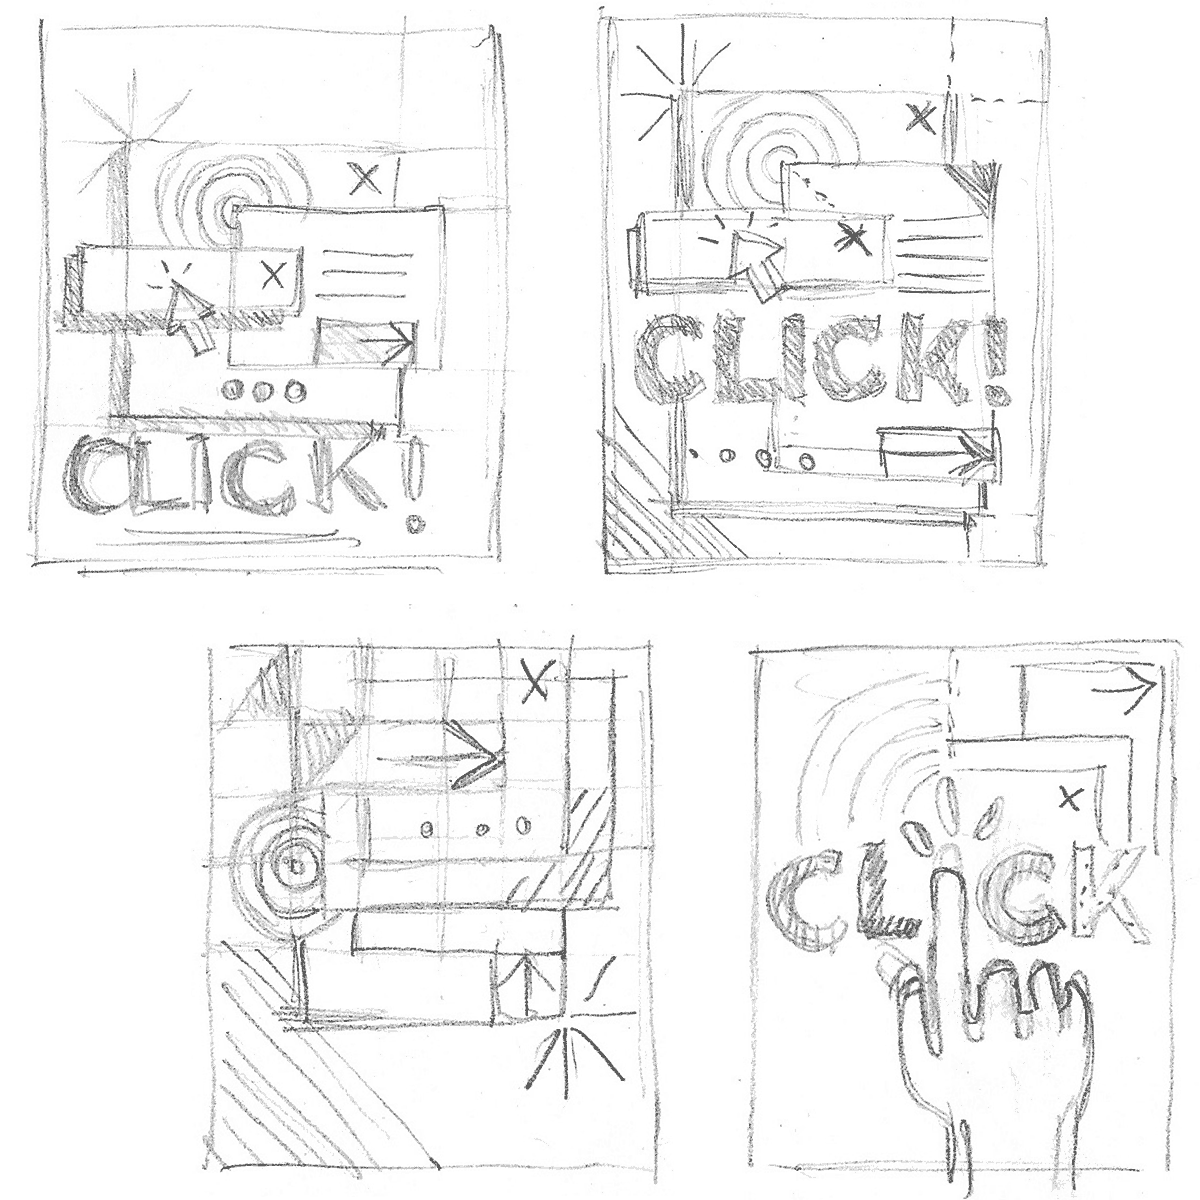 Click! book cover first sketches and doodleslick! book color palette explorations